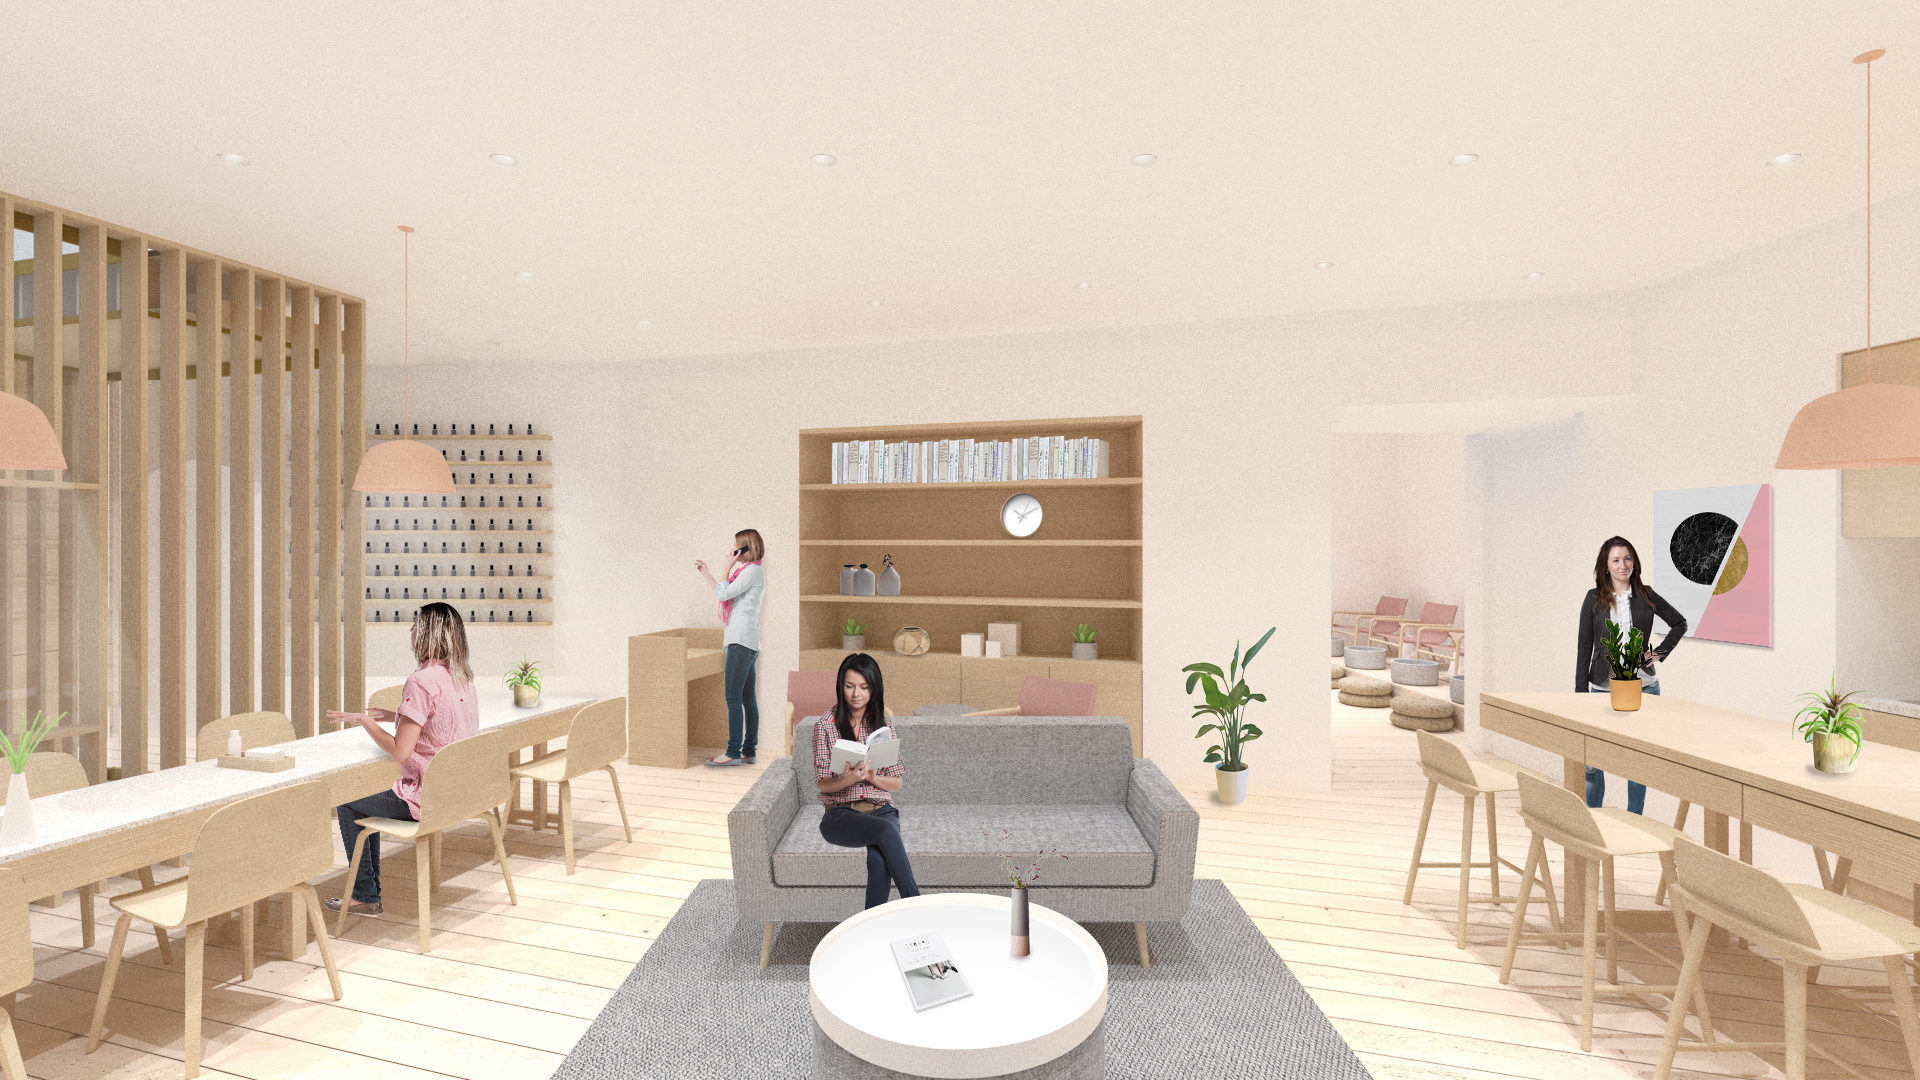 View of the Living Room, combining manicure, lounging, and food-related wellness activities.